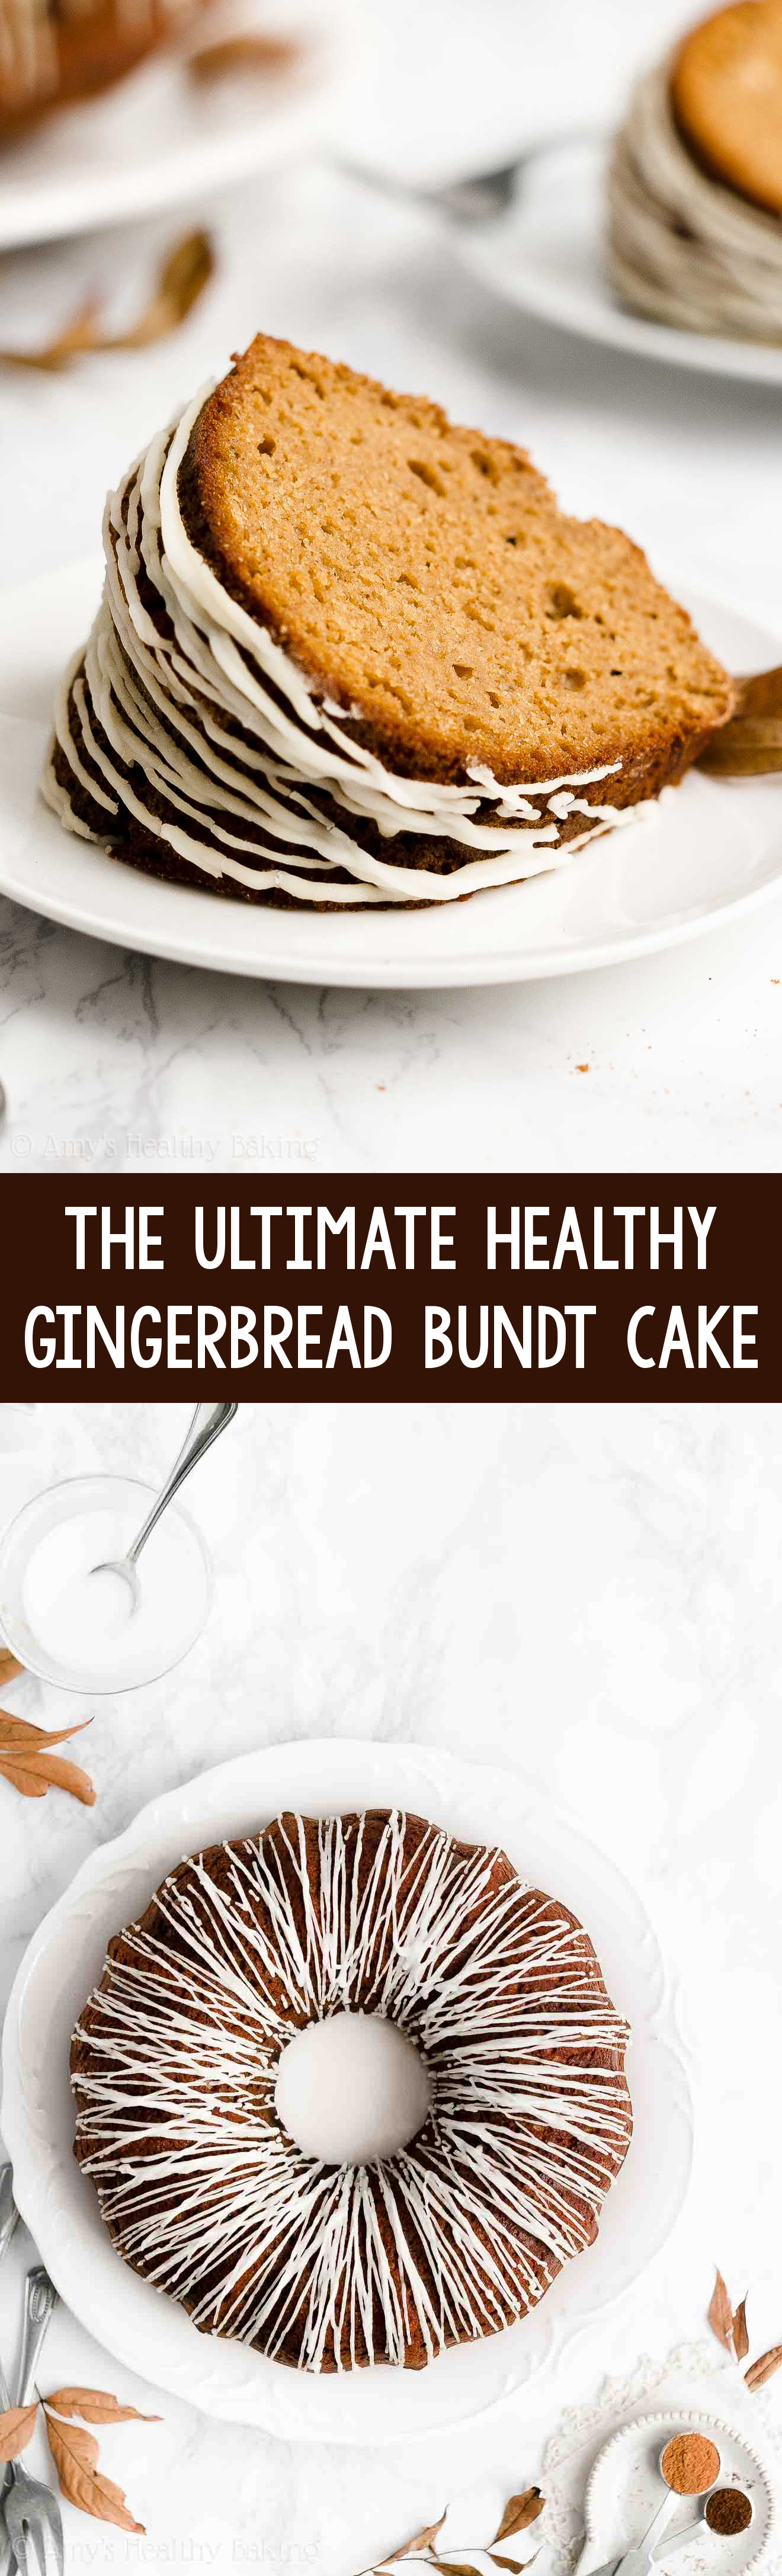 BEST EVER Easy Healthy Old Fashioned Moist Gingerbread Bundt Cake with Sugar Free Glaze